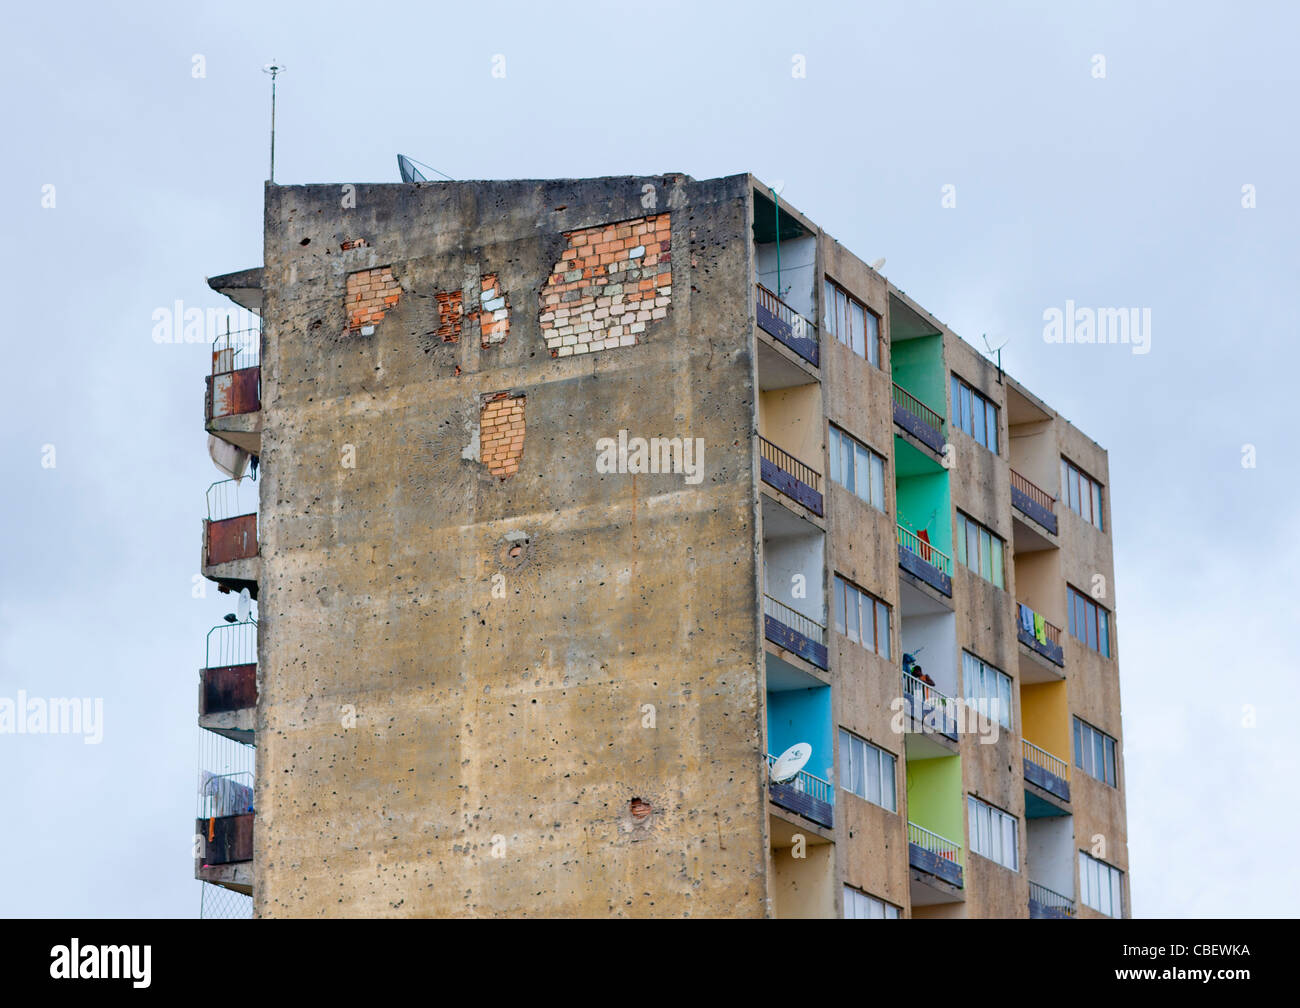 Bullet Impacts On A Building Facade In Huambo, Angola - Stock Image